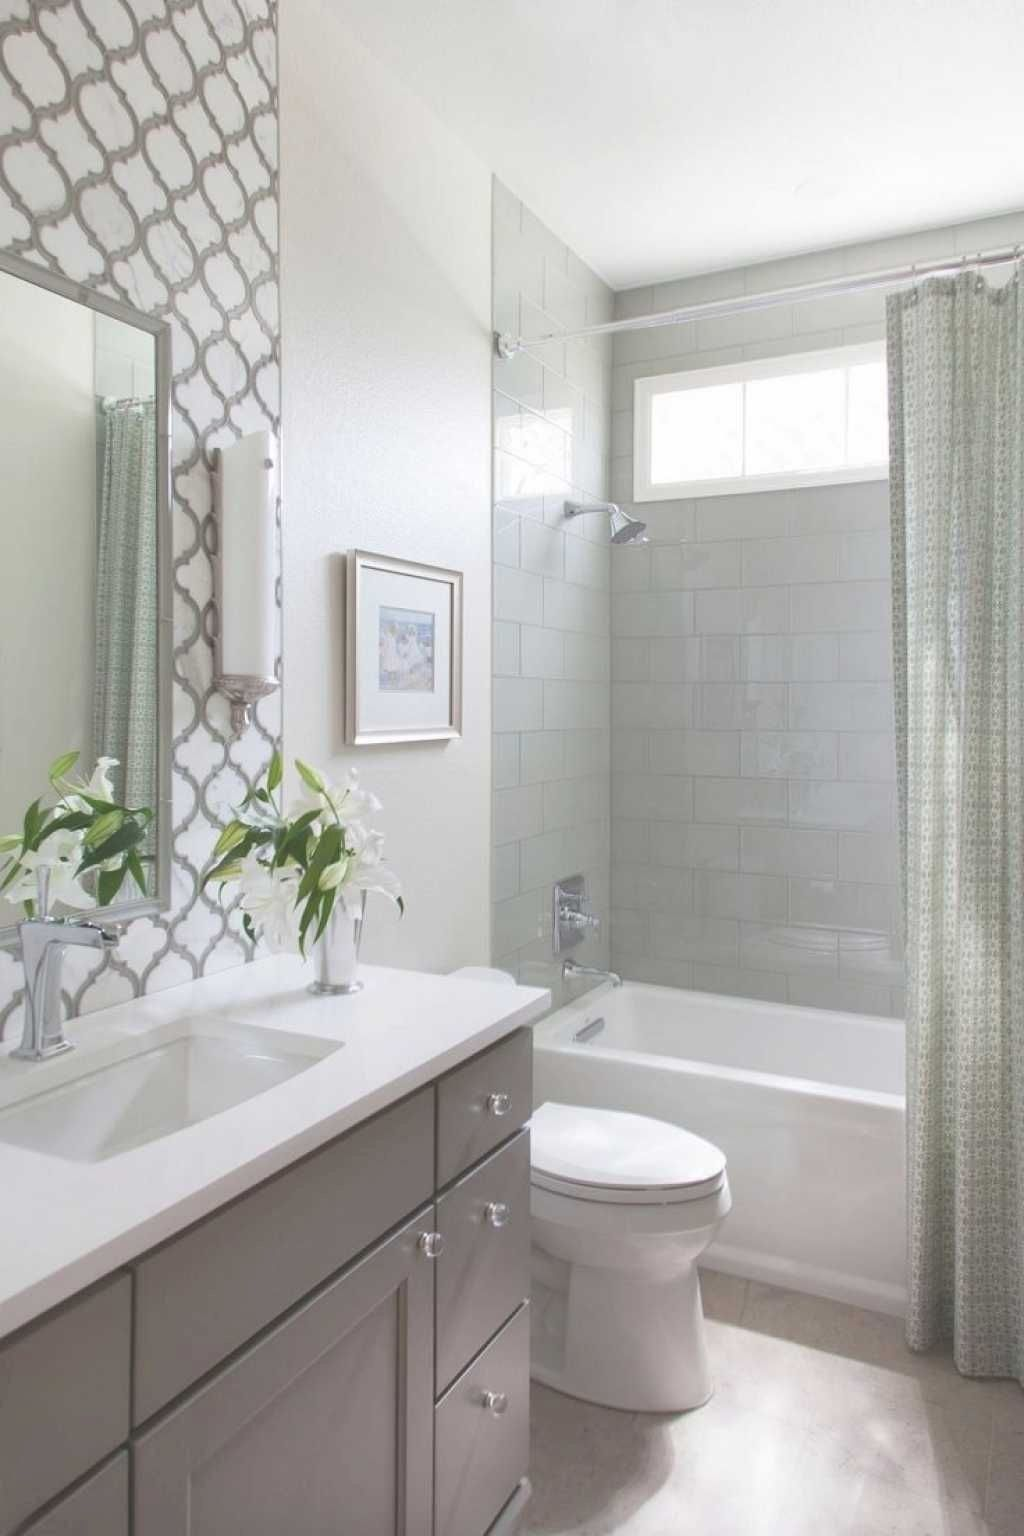 111 Awesome Small Bathroom Remodel Ideas On A Budget 1 Small Bathroom Renovations Bathroom Tub Shower Combo Bathroom Design Small